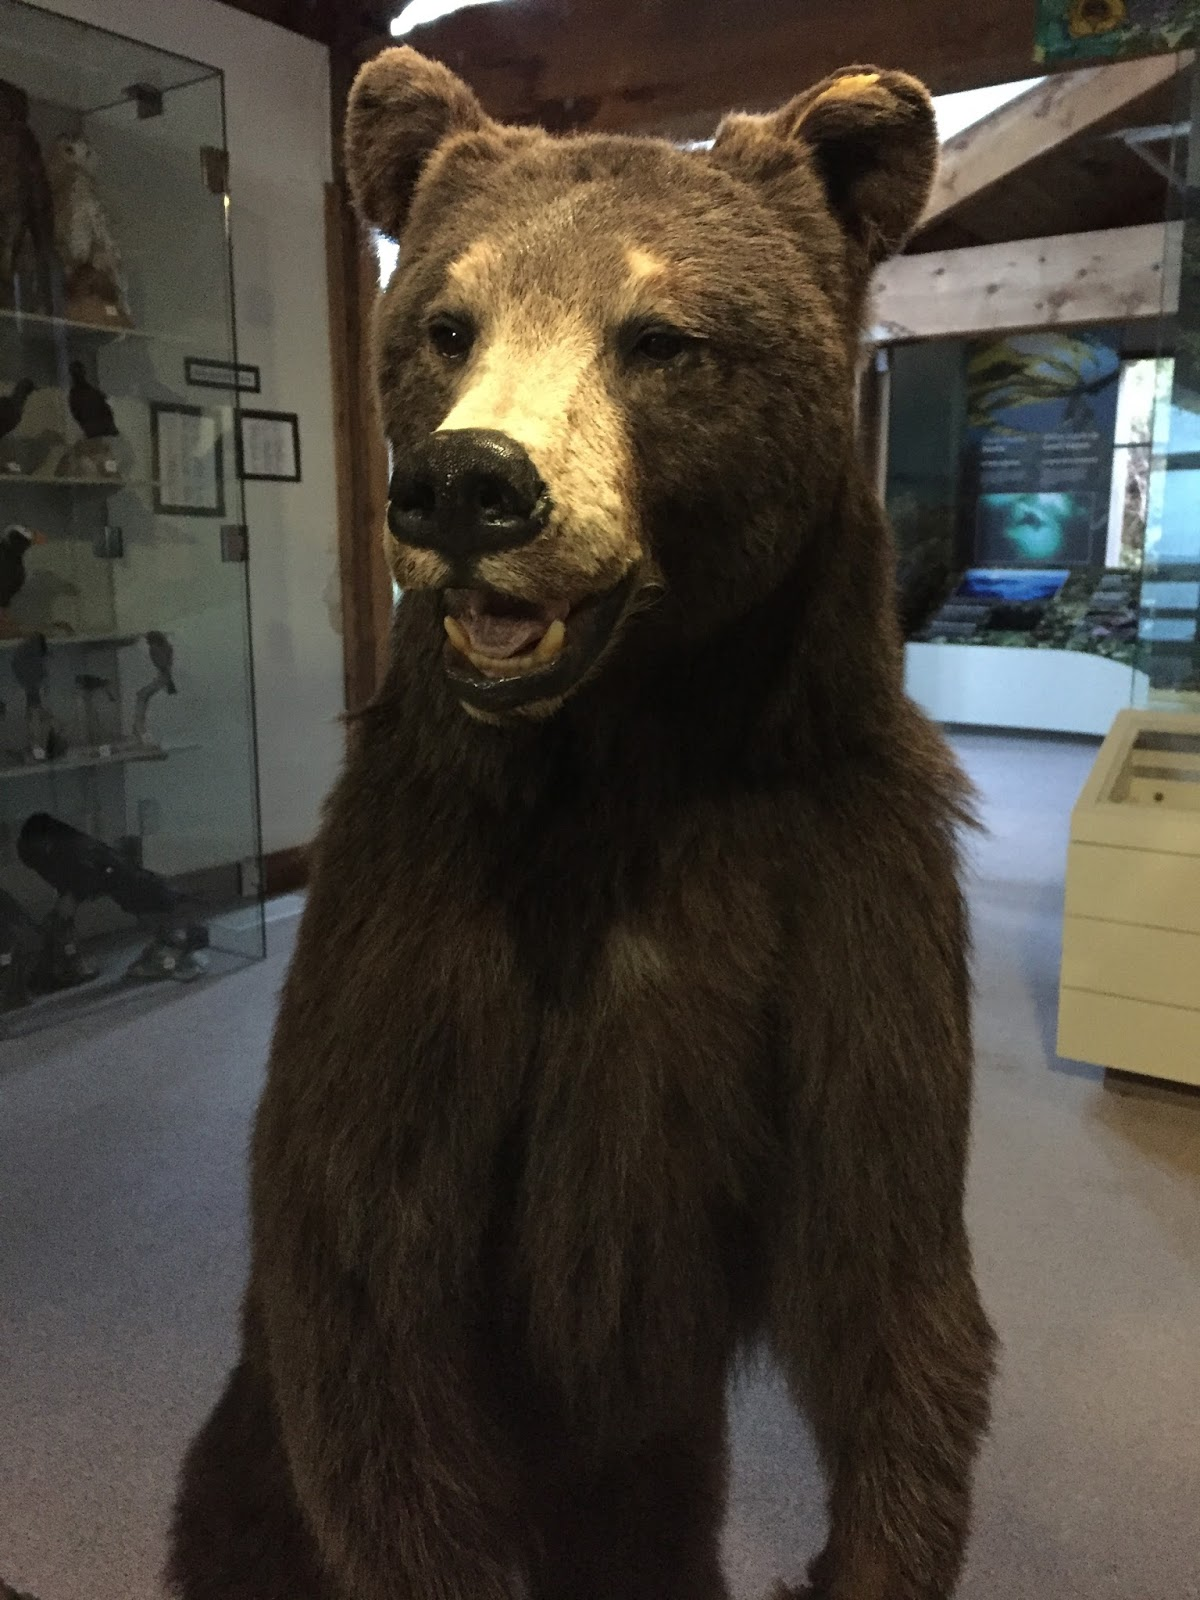 This bear has a cameo in the film